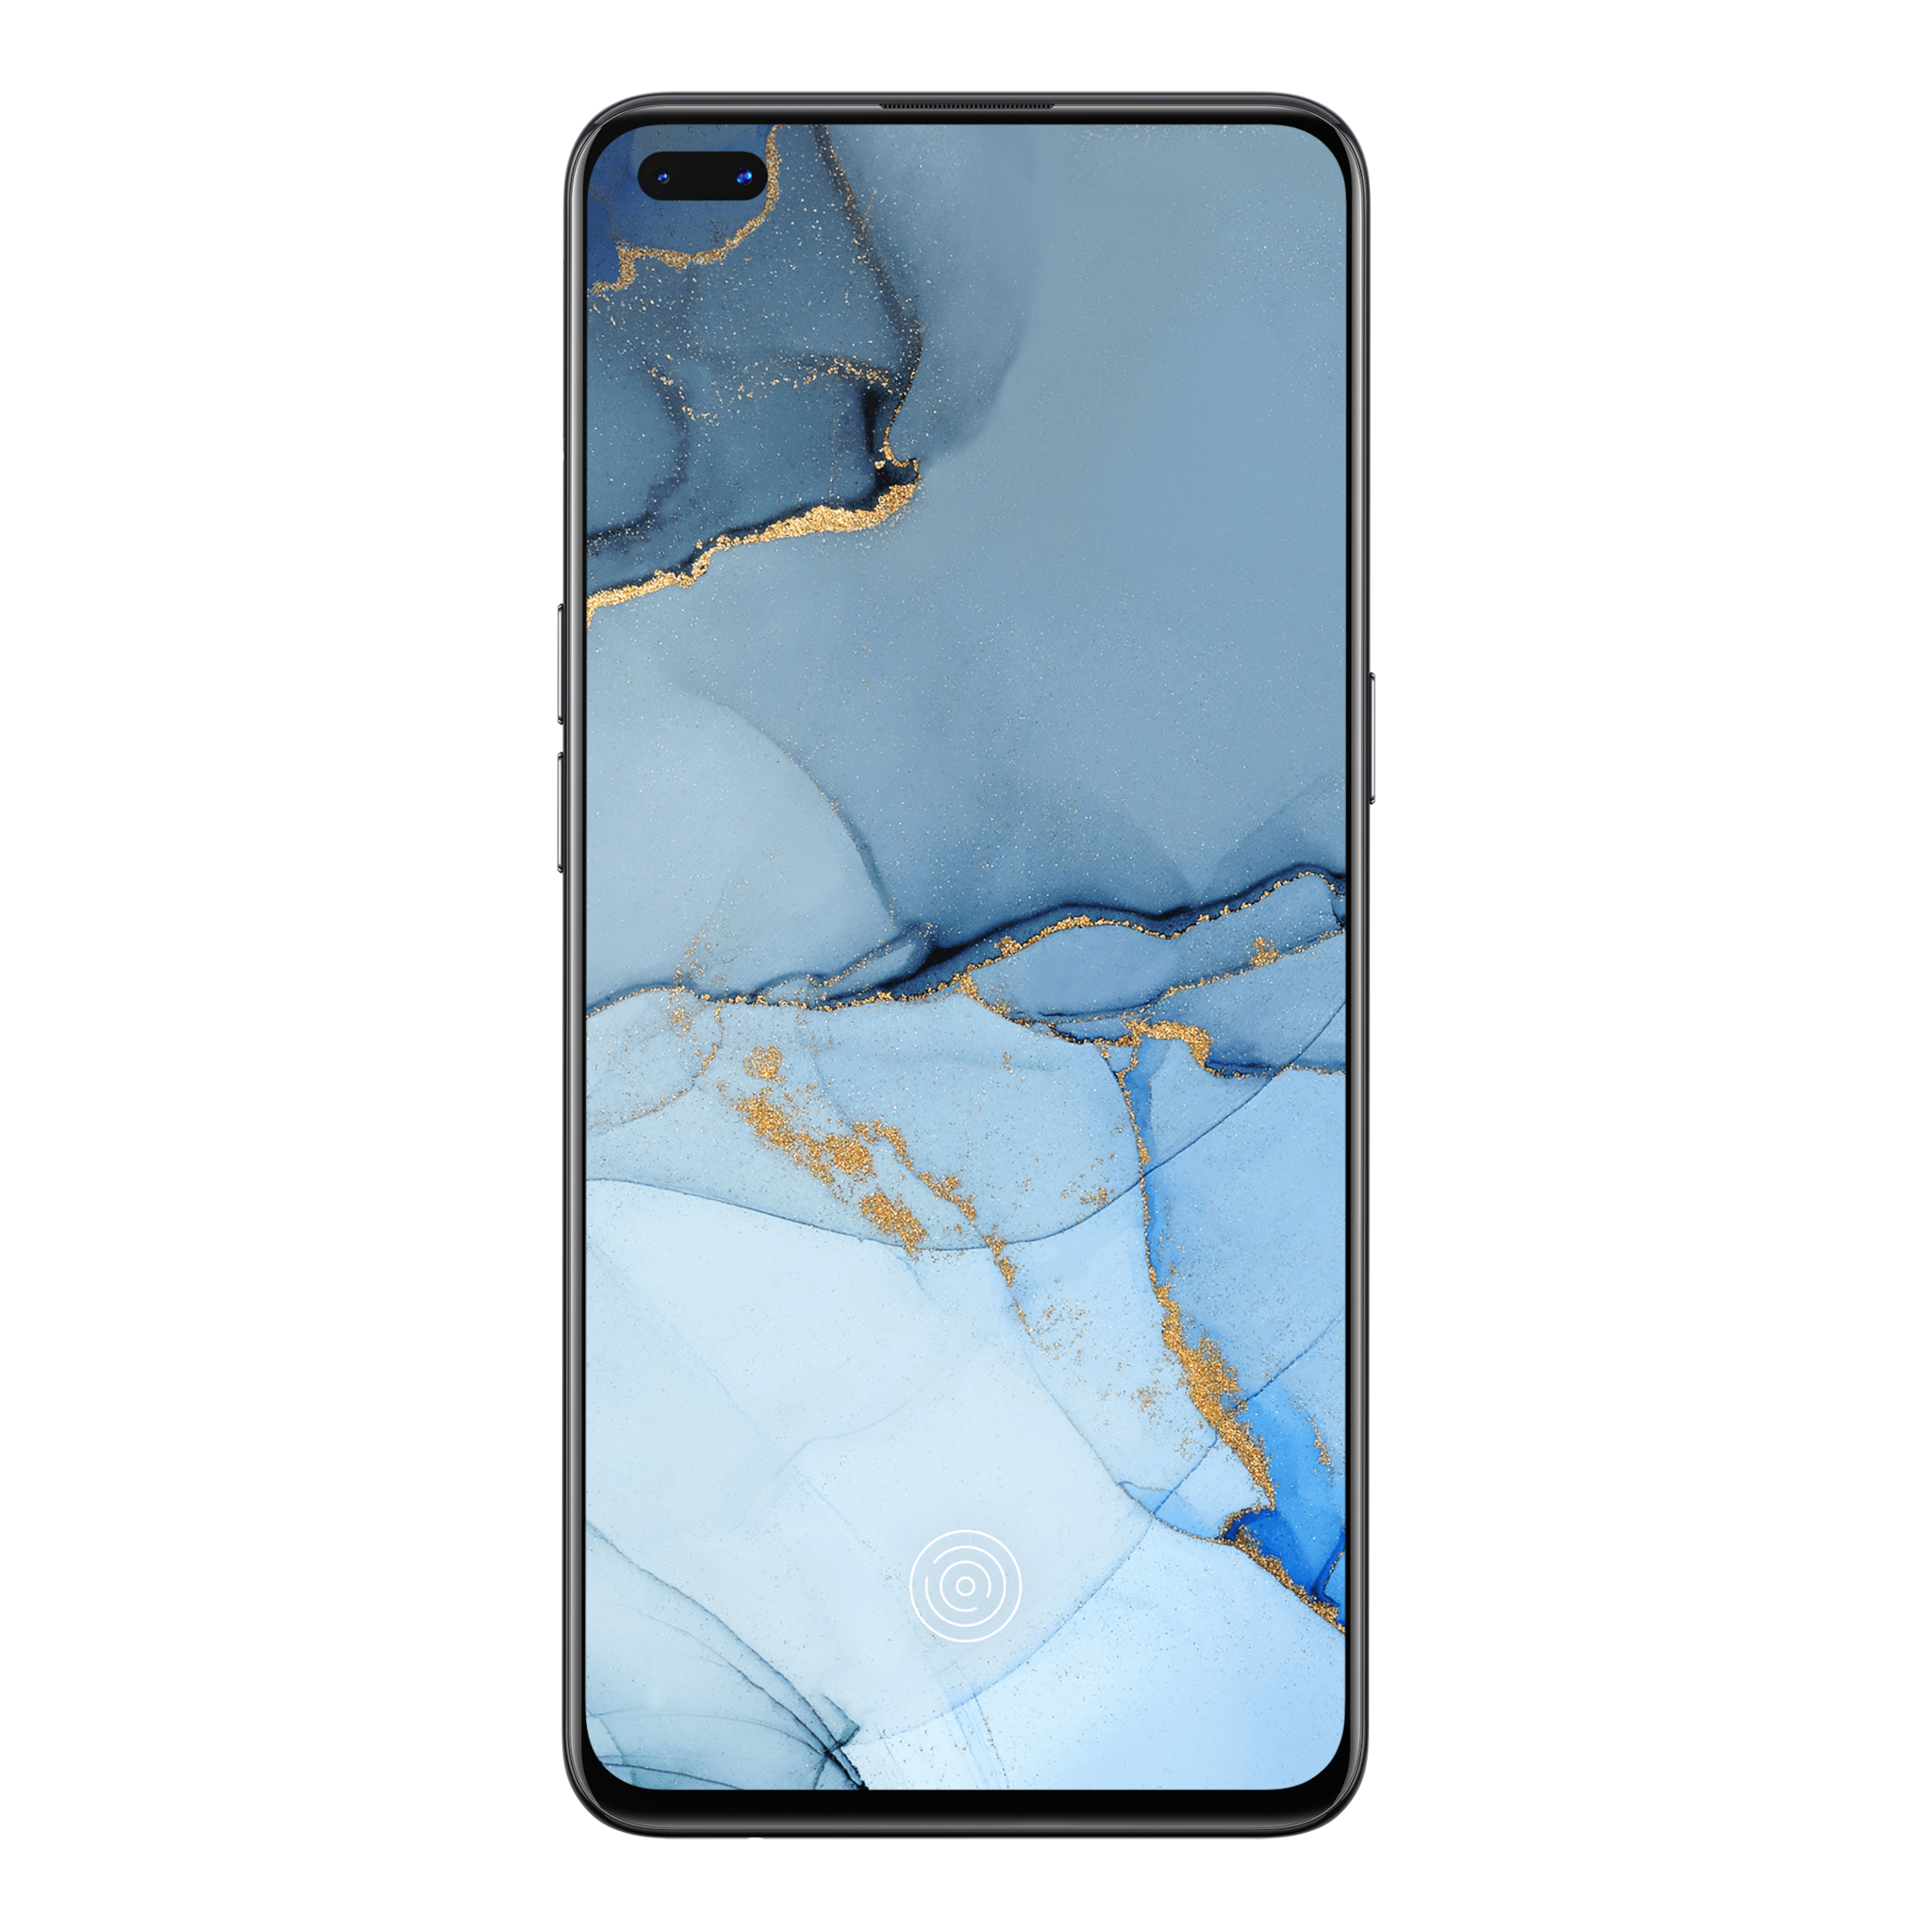 OPPO Reno3 Pro 8 GB 128 GB Midnight Black